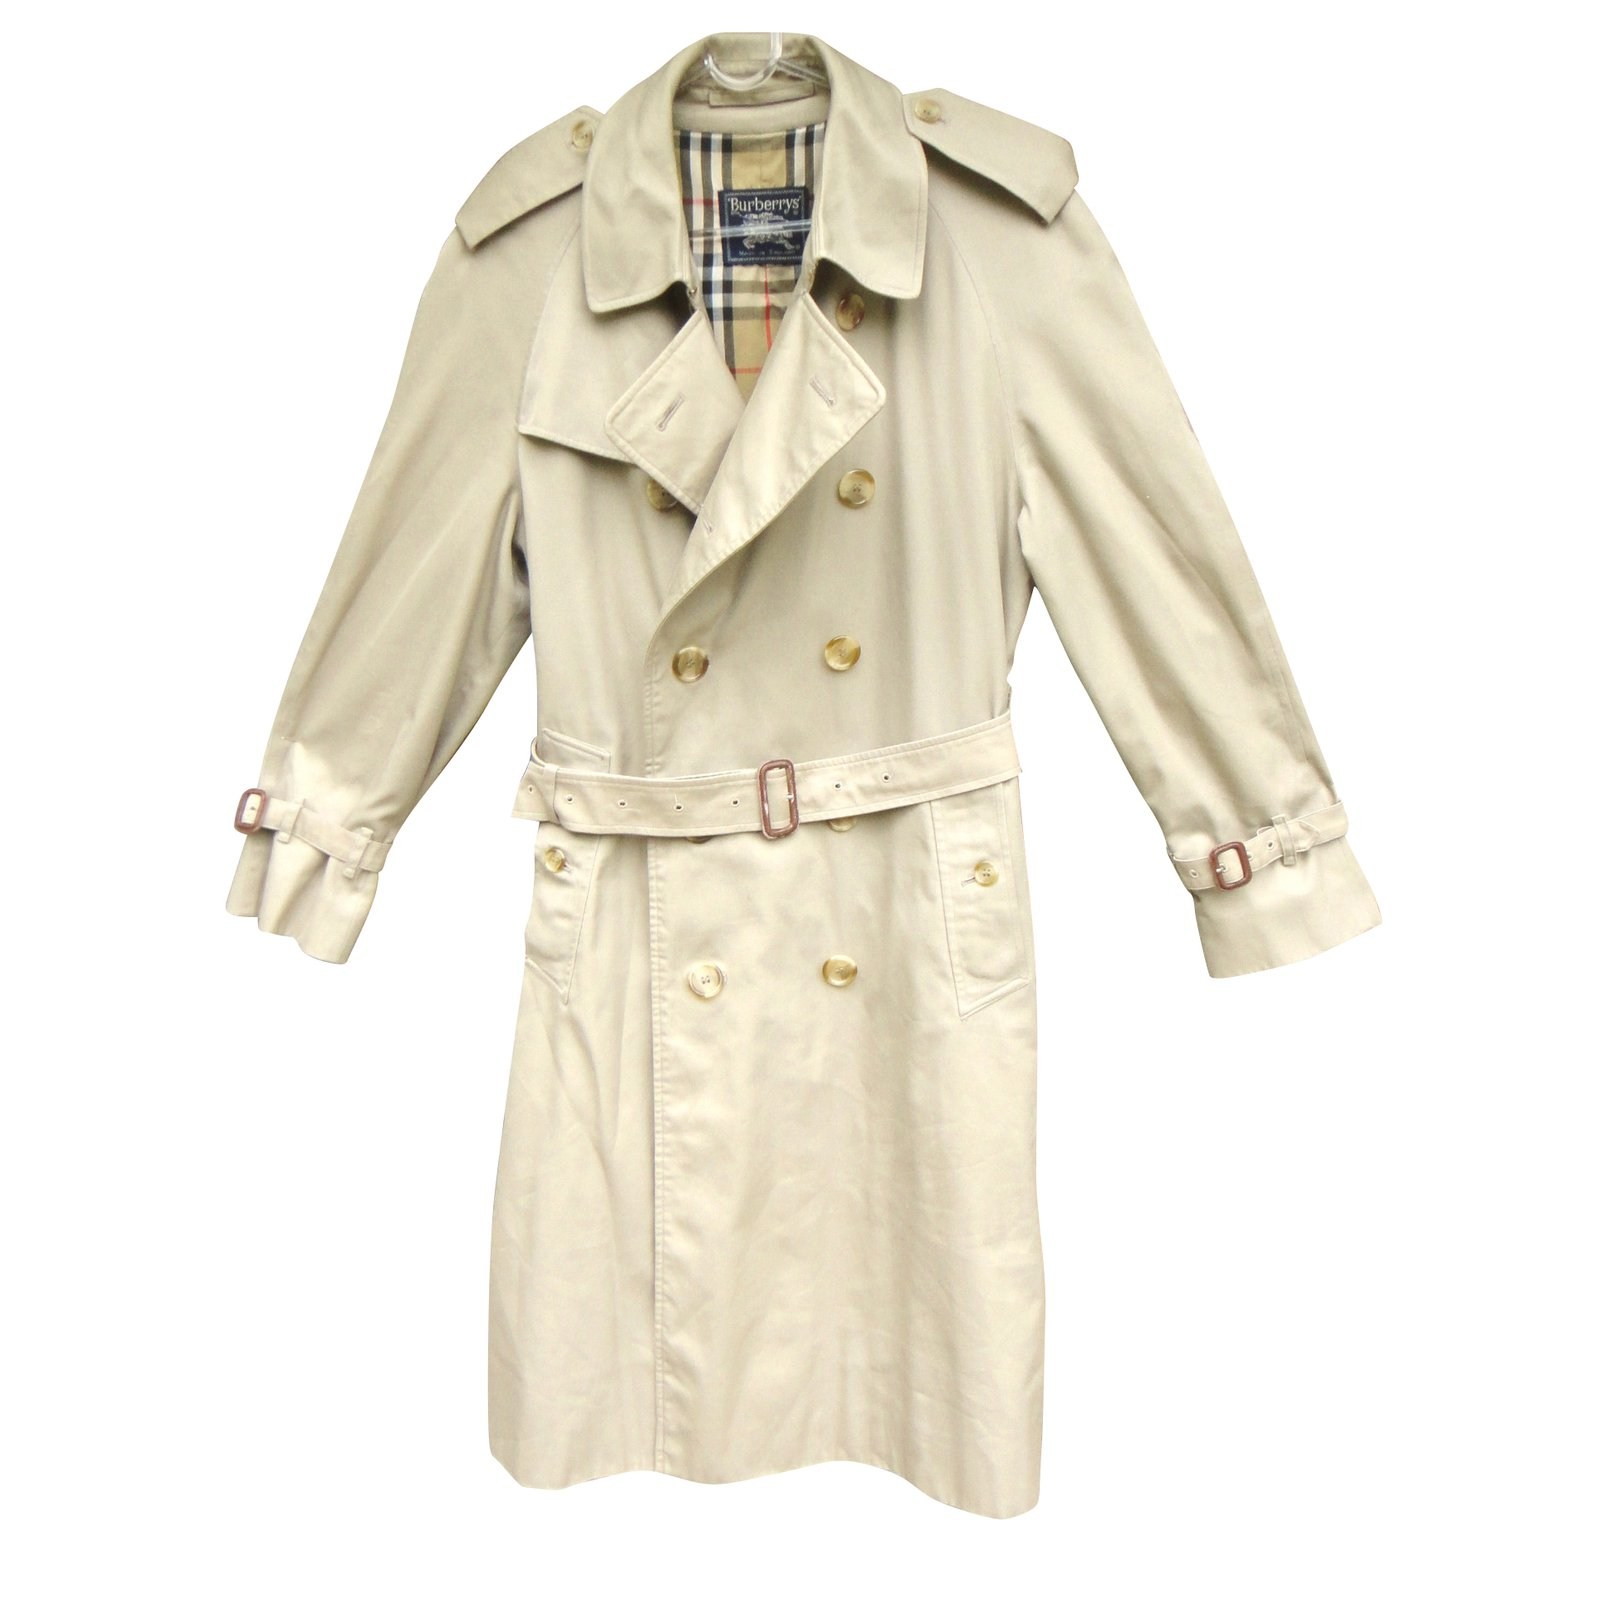 Burberry trench coat Men Coats Outerwear Cotton,Polyester Beige ref.43150 2719825825ff